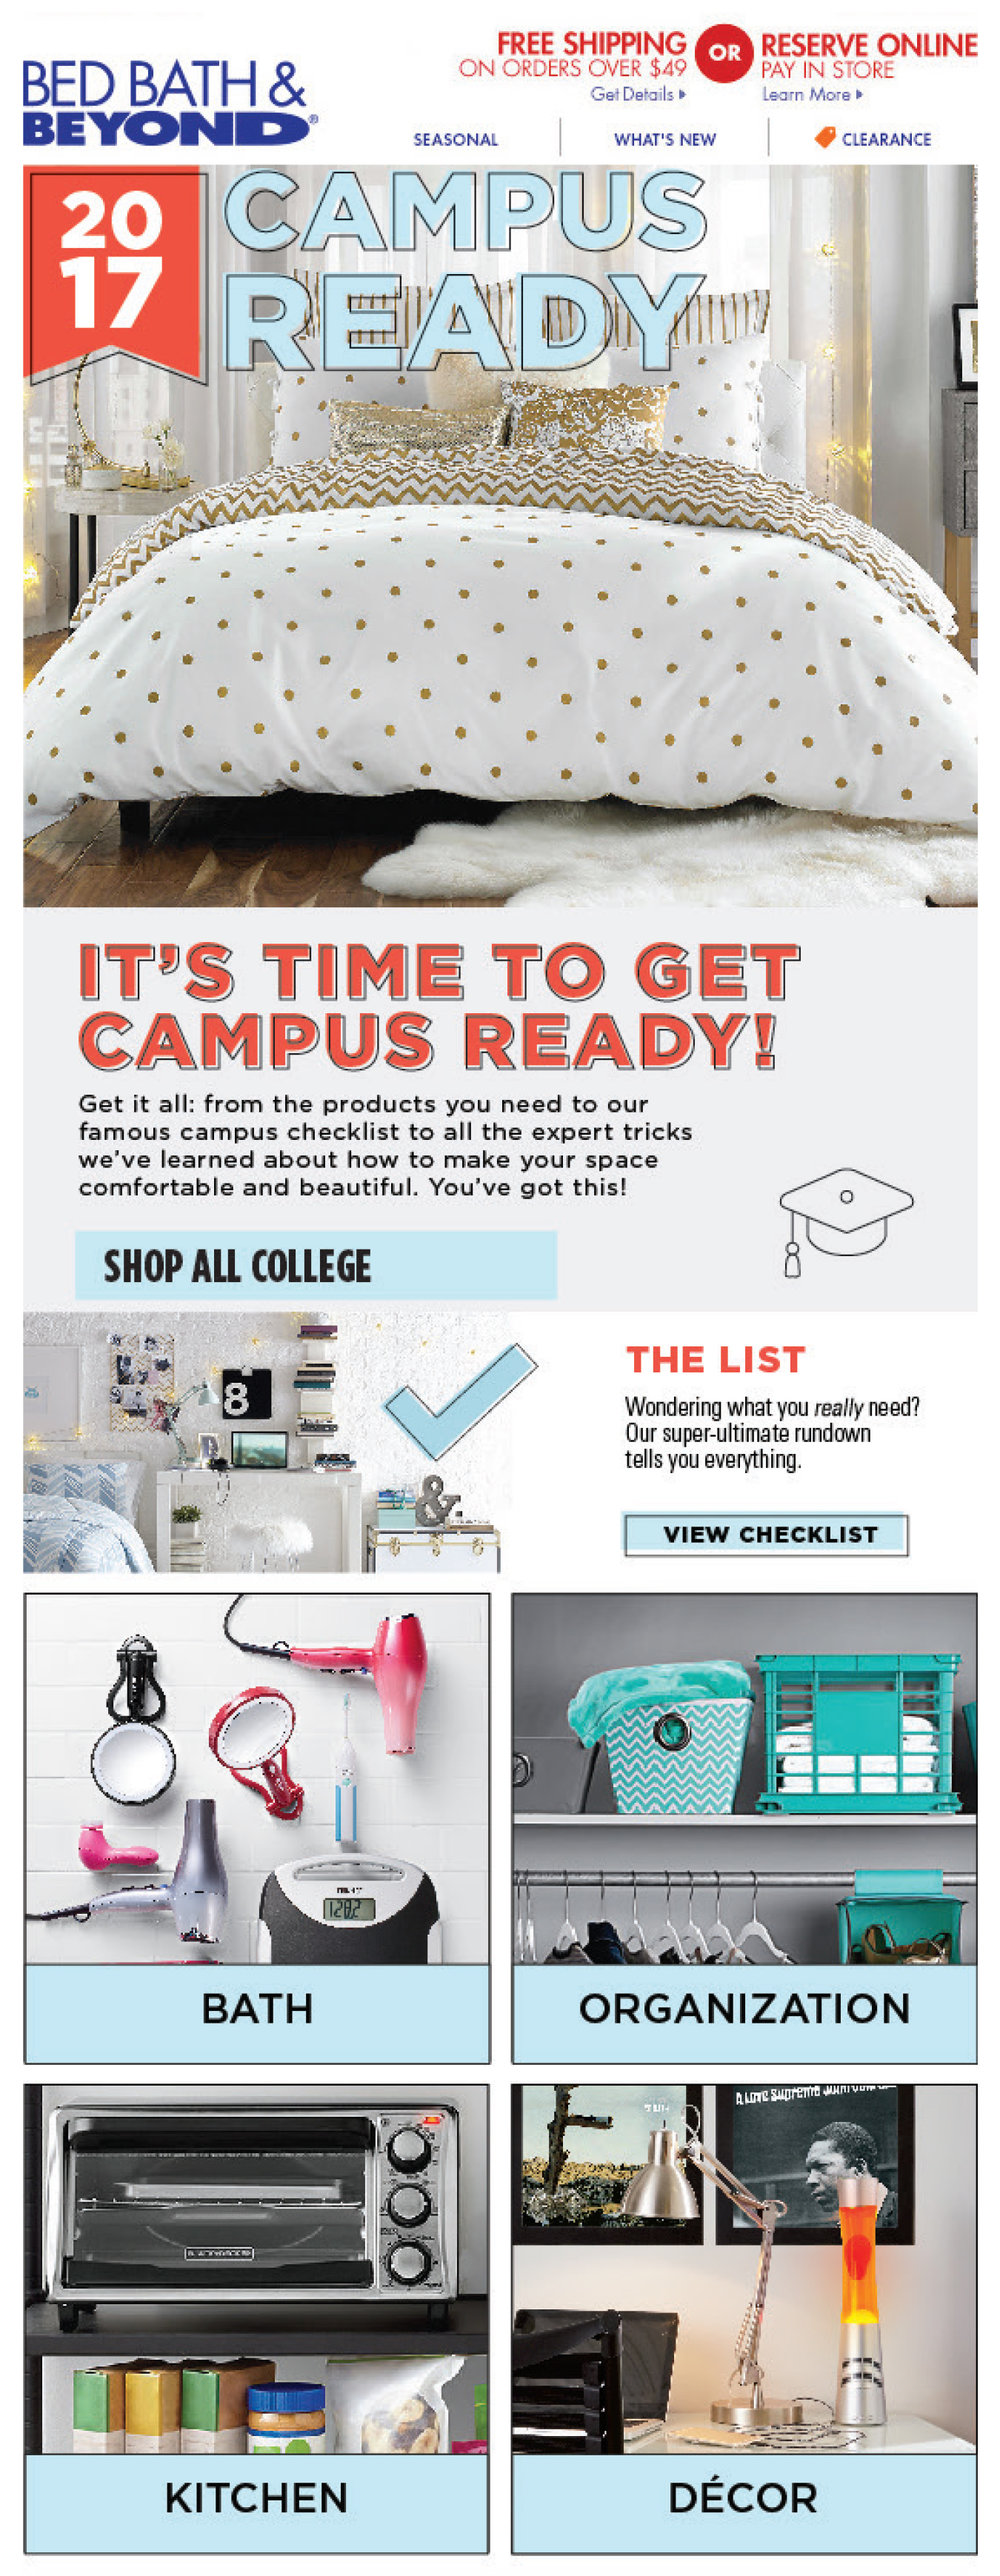 Bed Bath & Beyond College email Conceptualized and designed with Photoshop and Illustrator